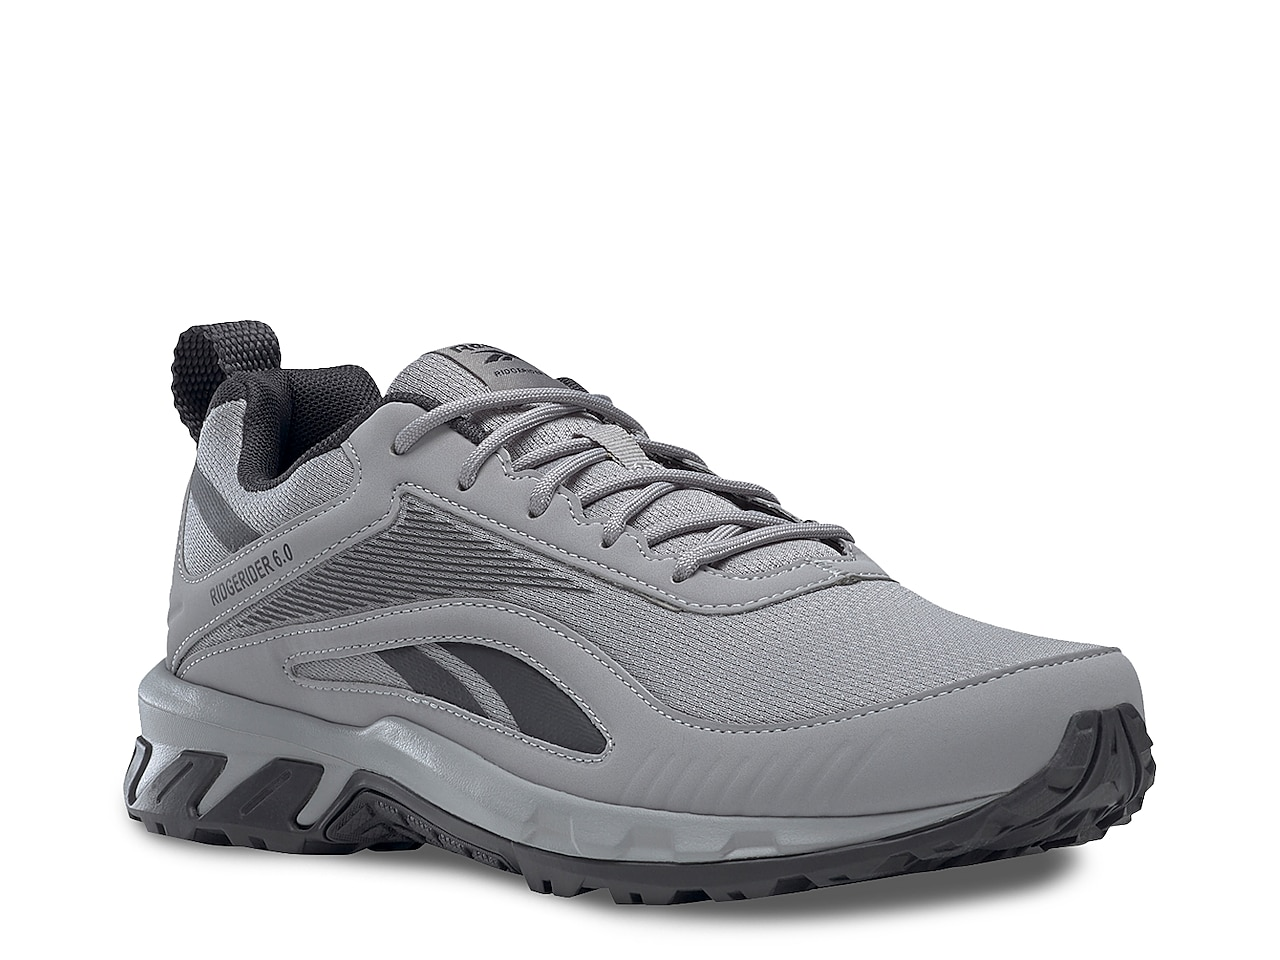 Ridgerider 6.0 Walking Shoe - Men's